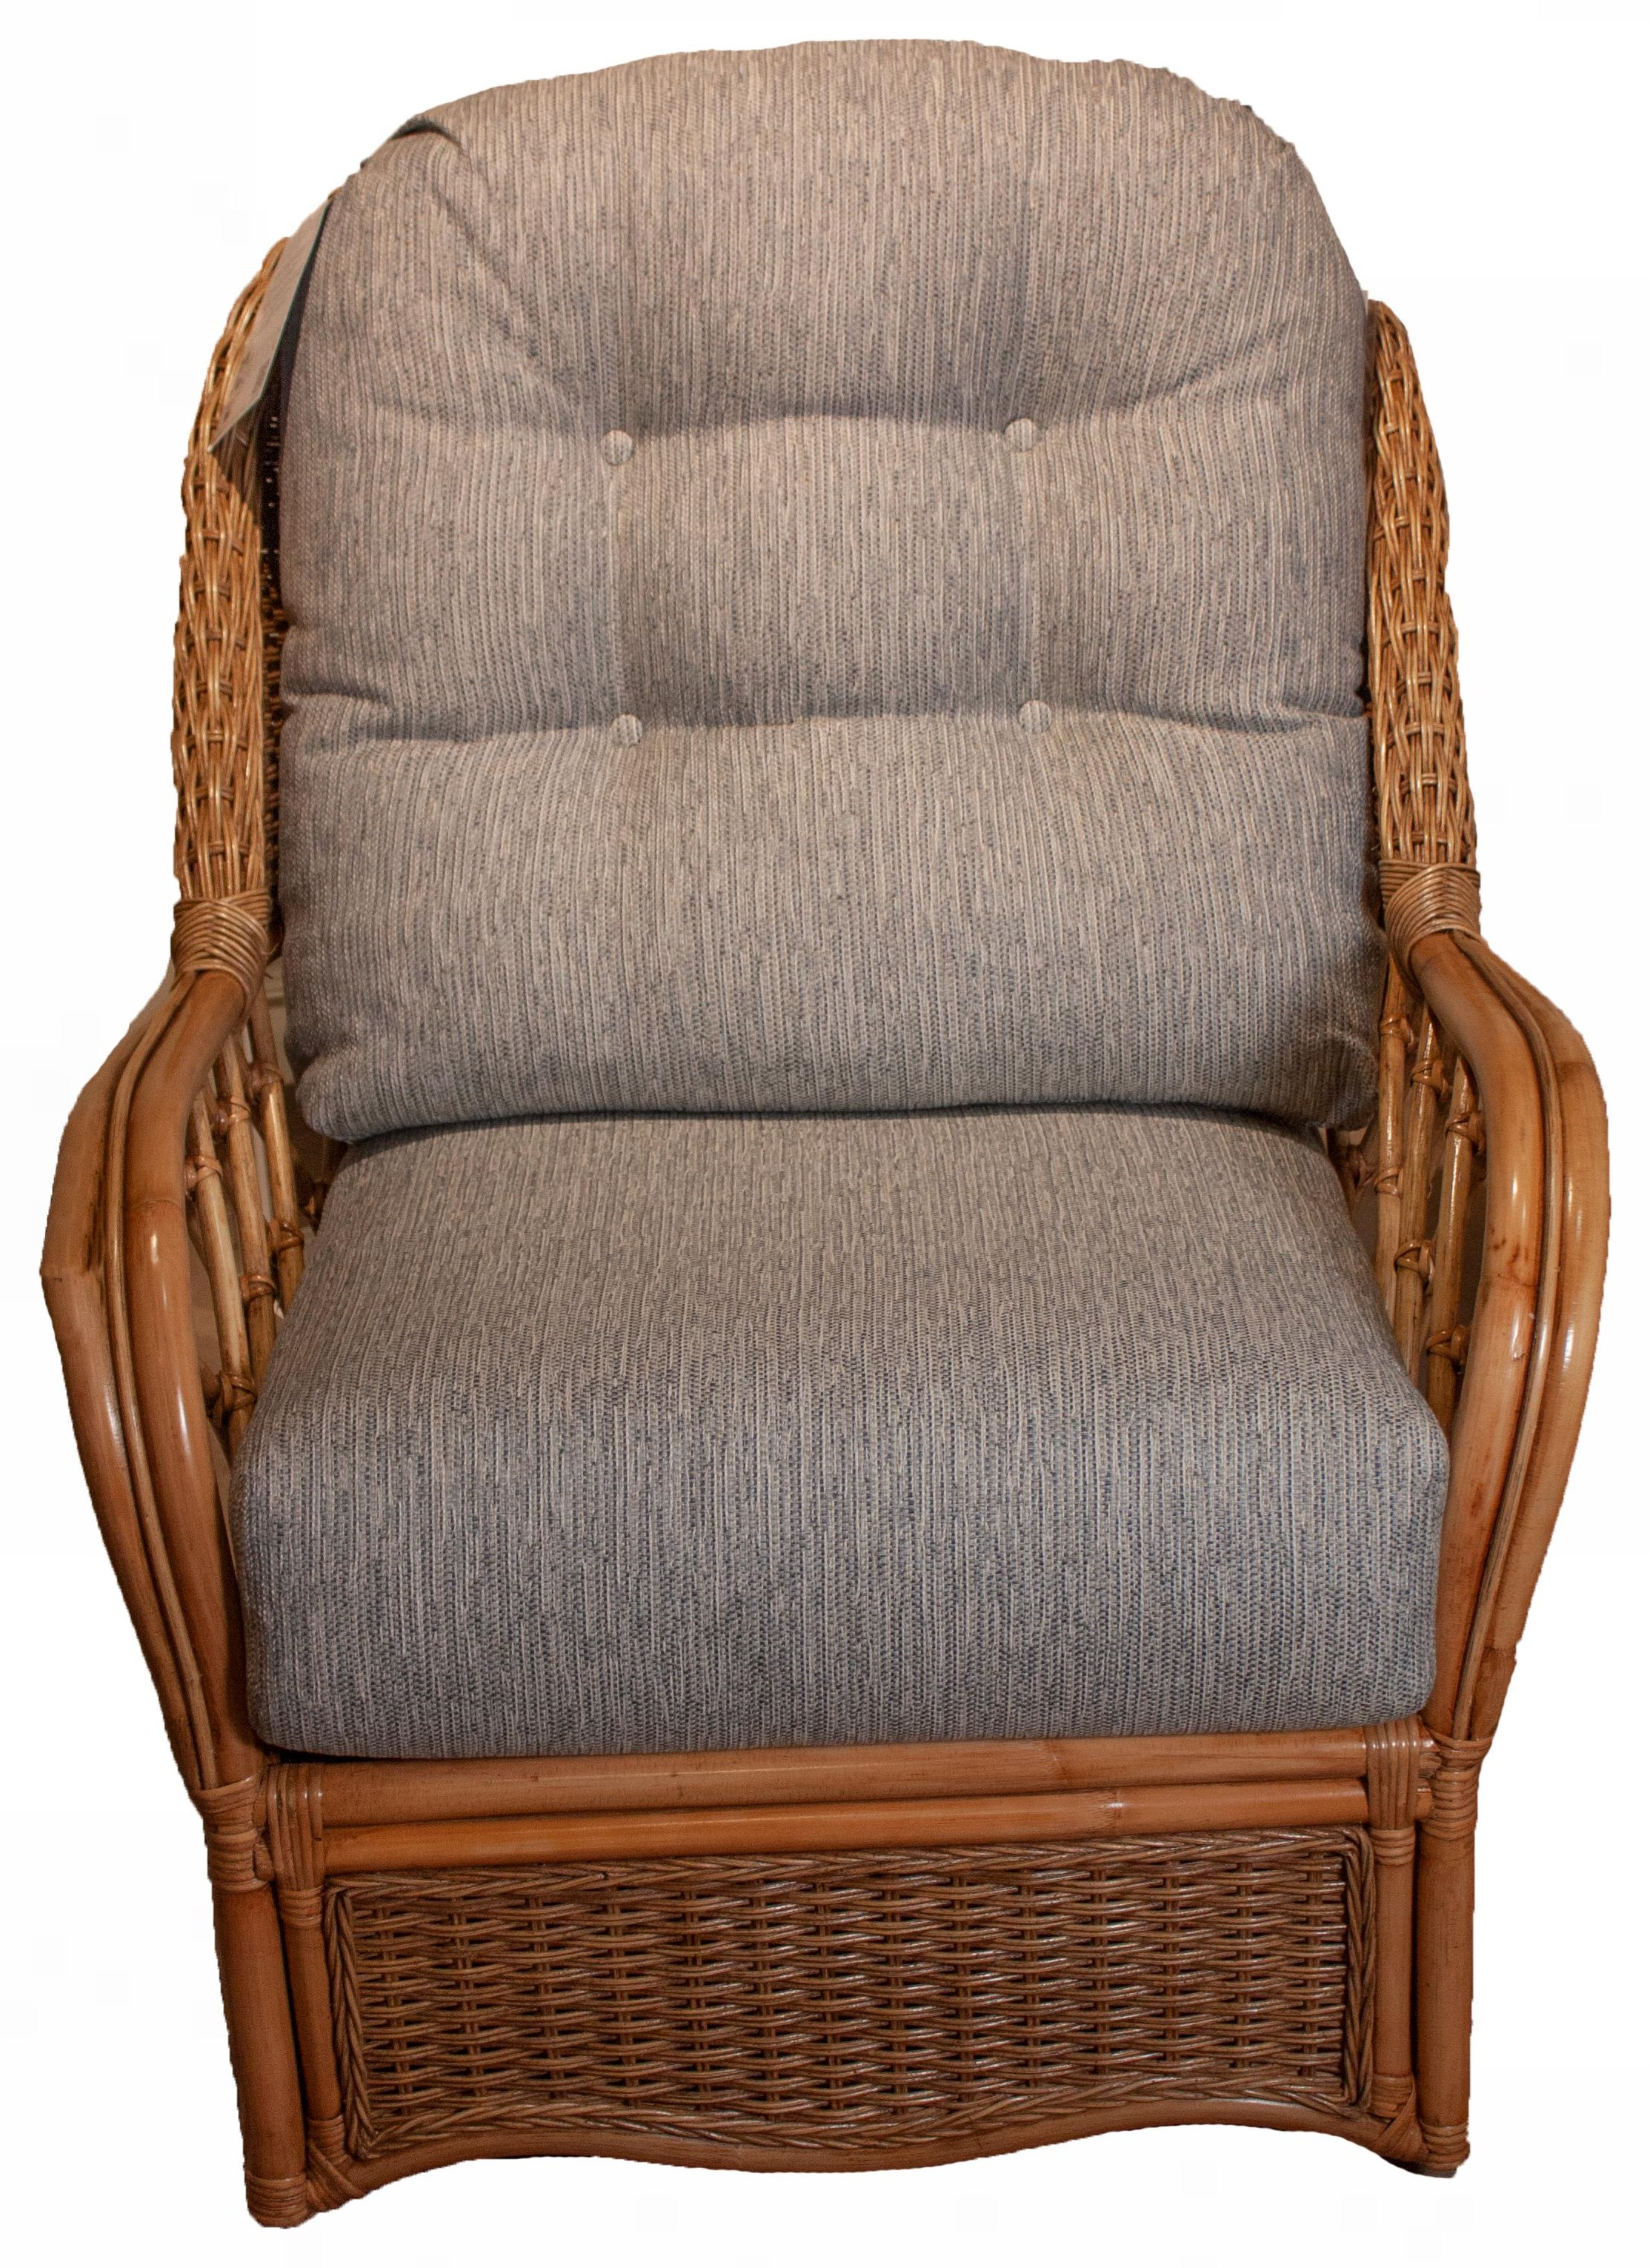 Everglade Mission Style Everglade Swivel Glider by Braxton Culler at Esprit Decor Home Furnishings